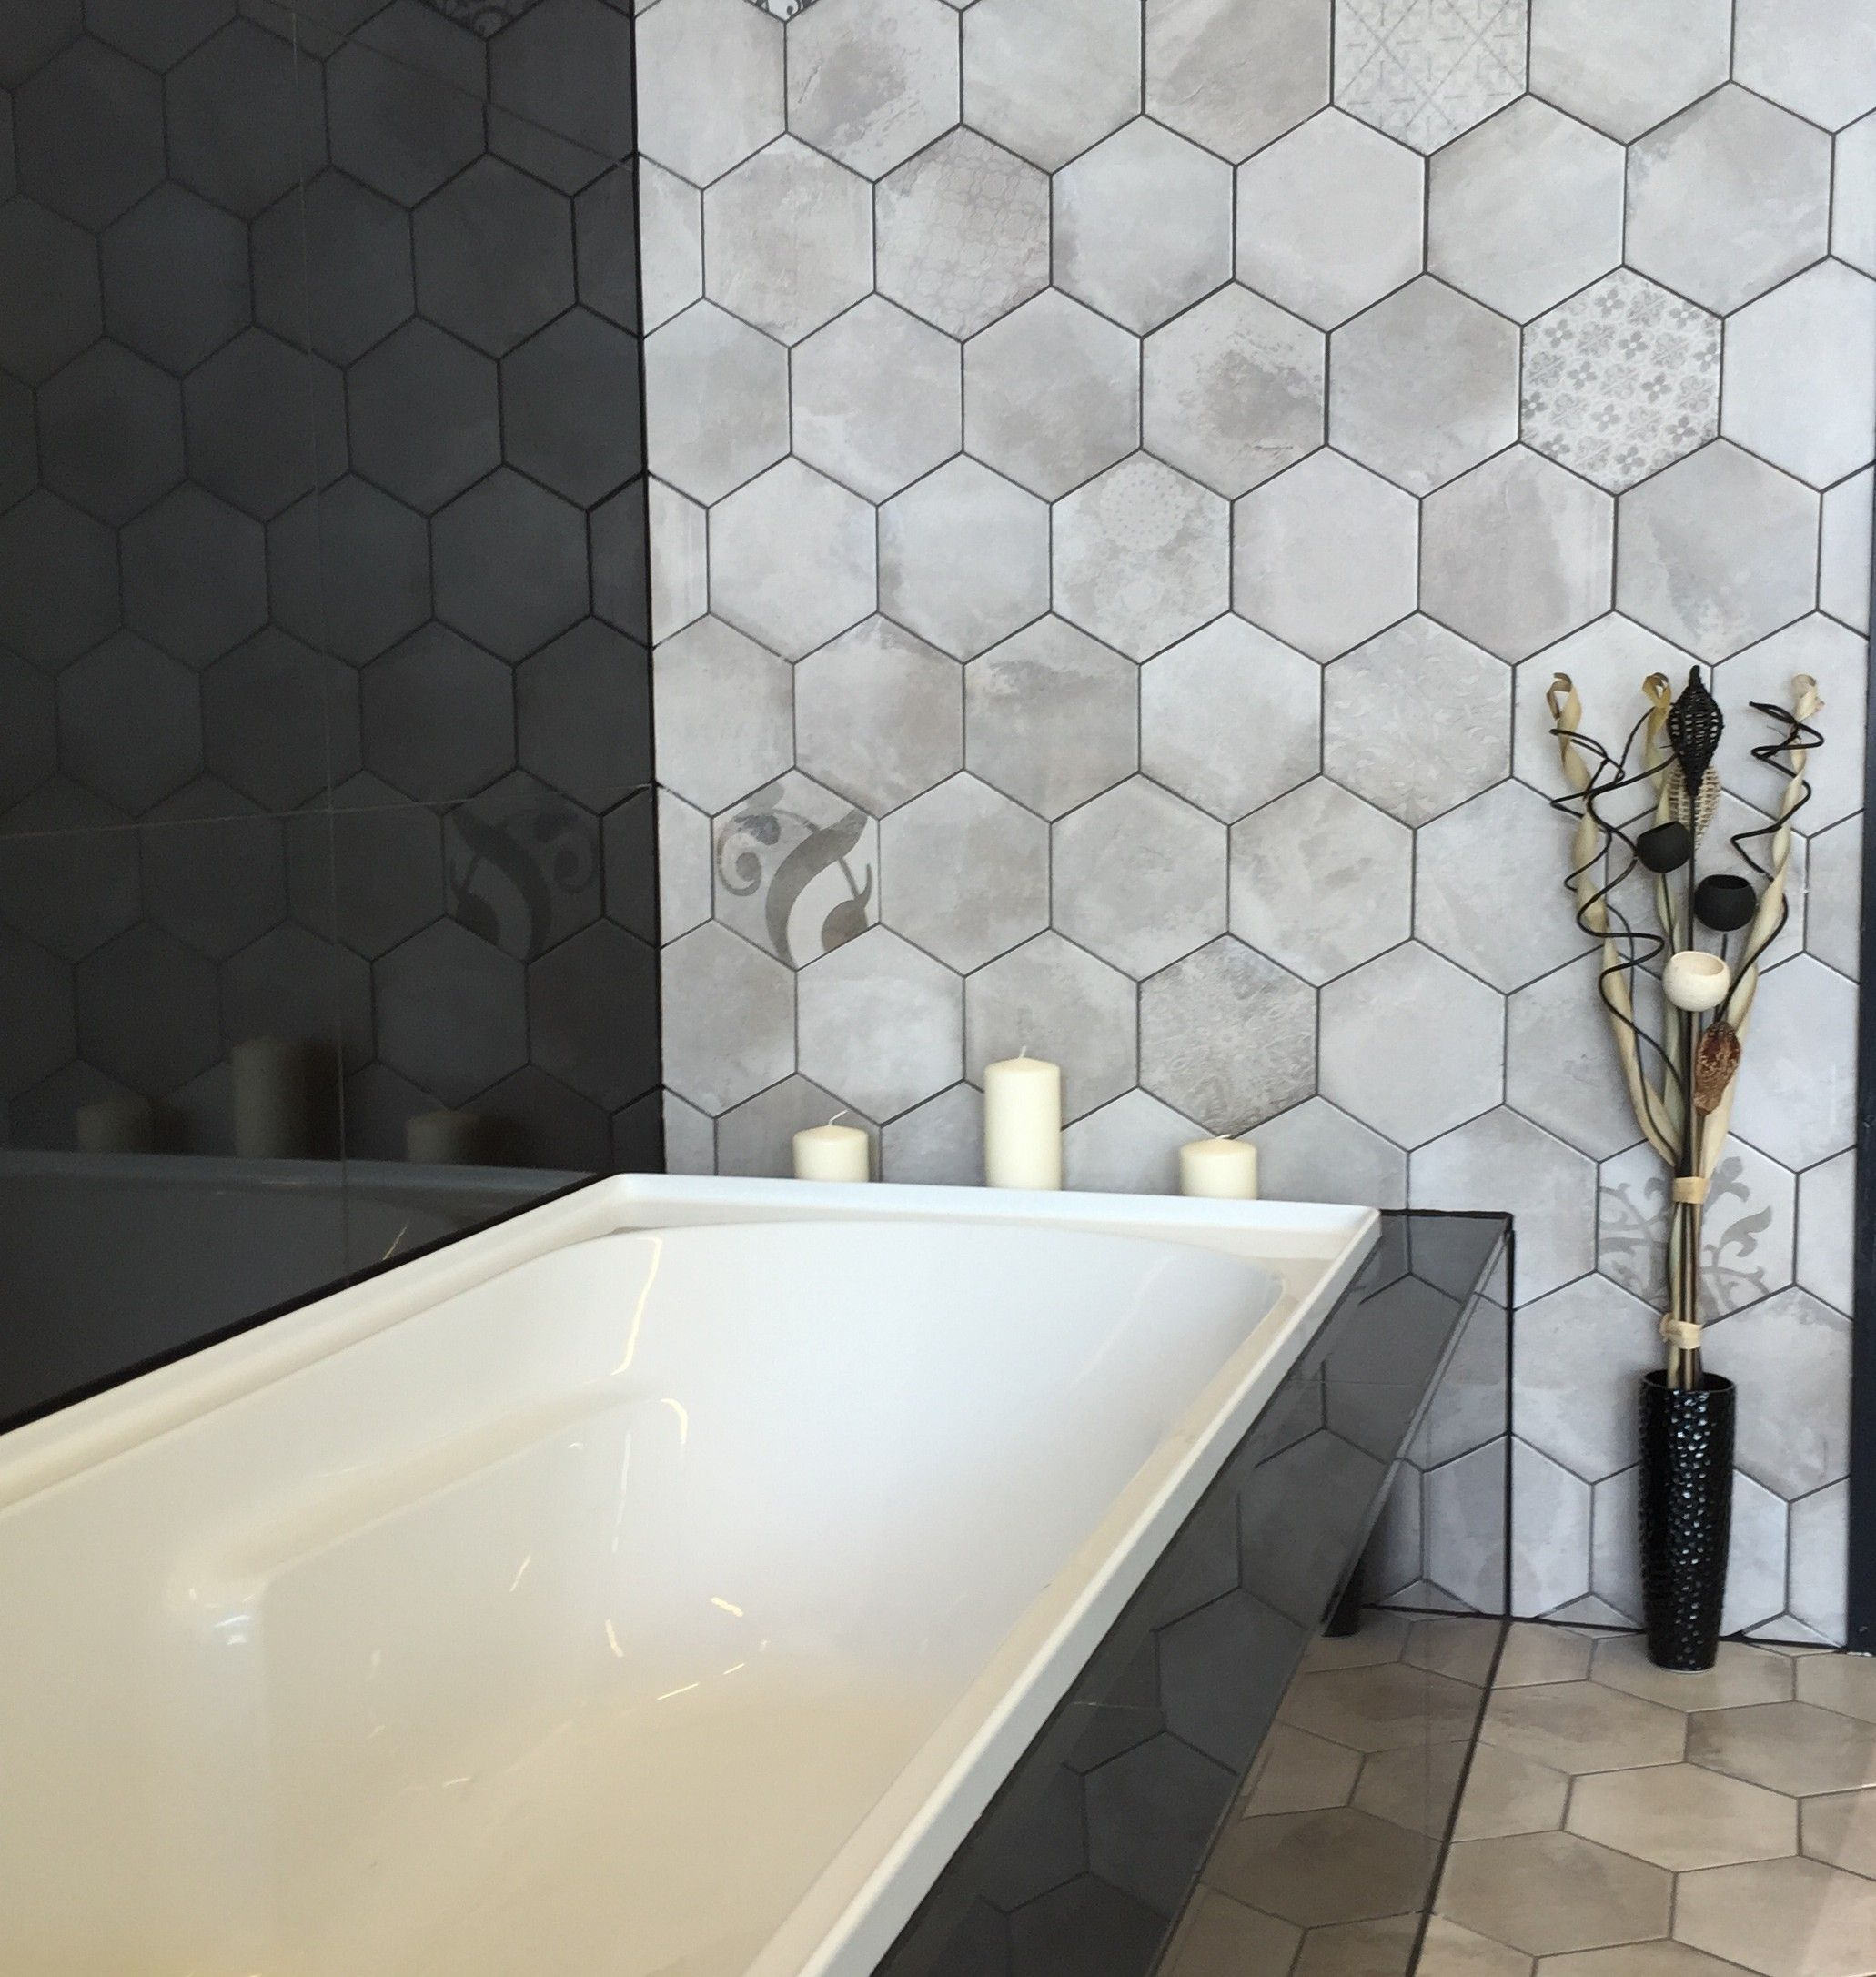 Domme Grey Hexagon 20x20 Sqm Floor Tiles Tiles Our Products Bathroom Wall Tile Bathroom Flooring Options Dark Green Bathrooms